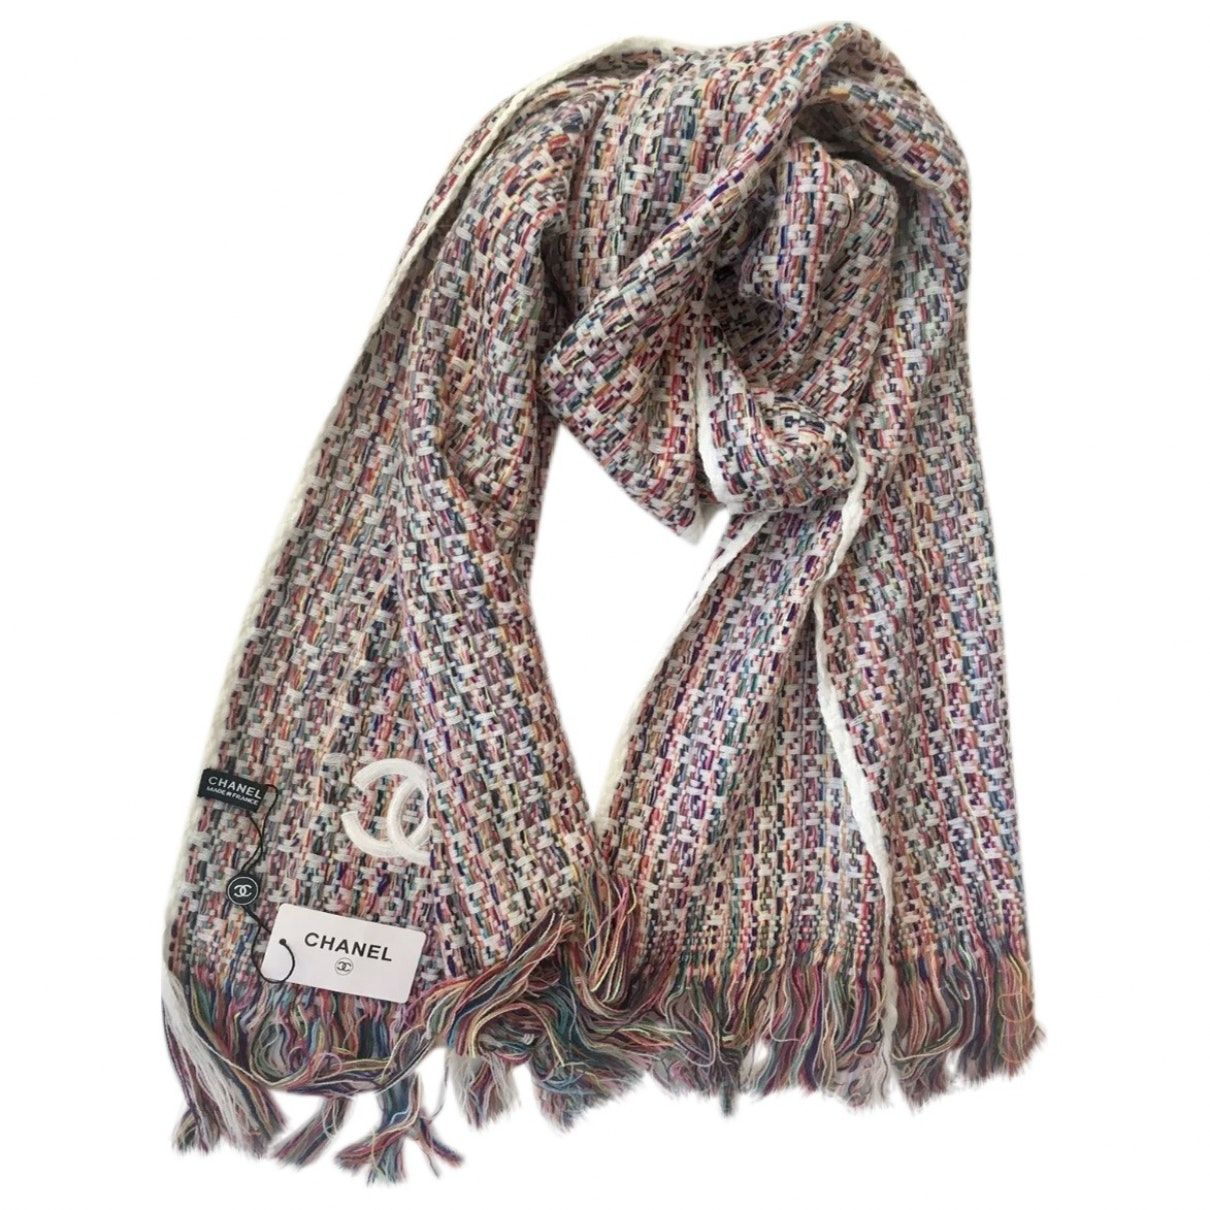 0afdaada251 CHANEL Cashmere scarf Chanel Scarf, Closet Accessories, Women Accessories,  Luxury Consignment, Cashmere